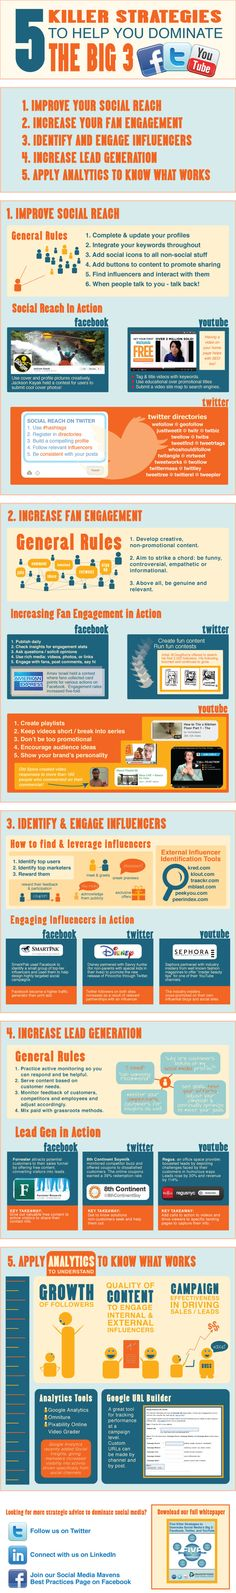 Basic tips (but still good) #SocialMedia infographic